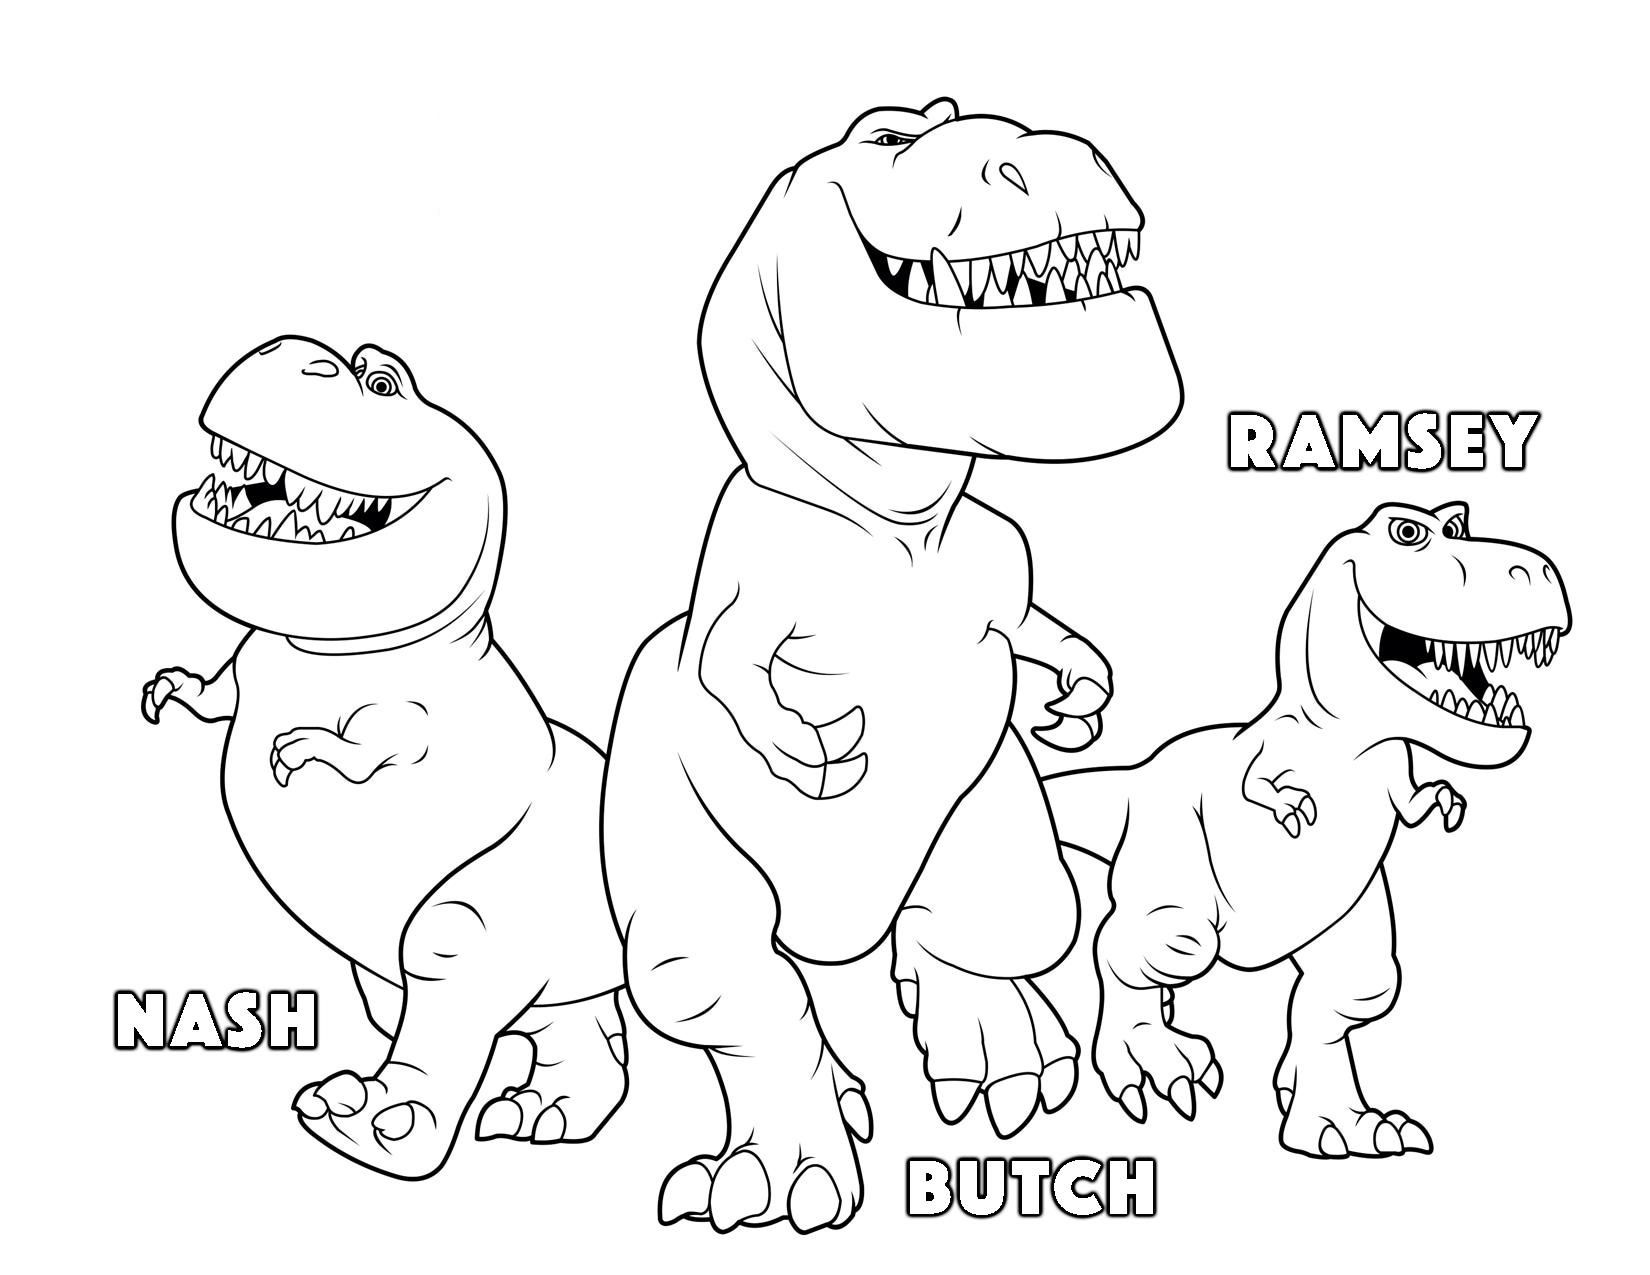 Childrens coloring dinosaur pages - Find This Pin And More On Crafts For Kids By Racurtis0411 The Good Dinosaur Butch Ramsey Nash Coloring Pages